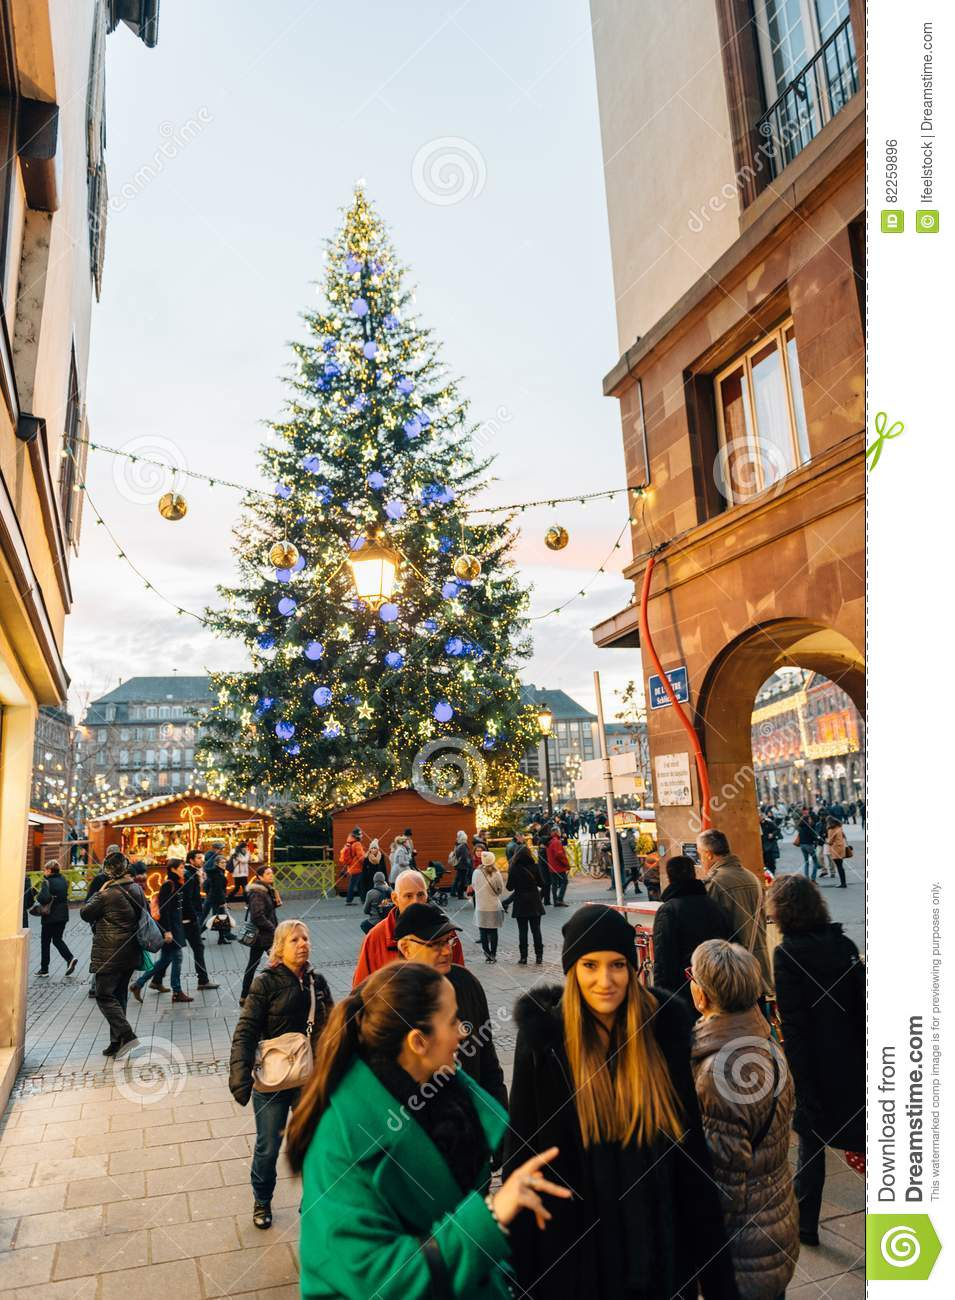 Majestic Christmas.Majestic Christmas Tree In City Editorial Photo Image Of